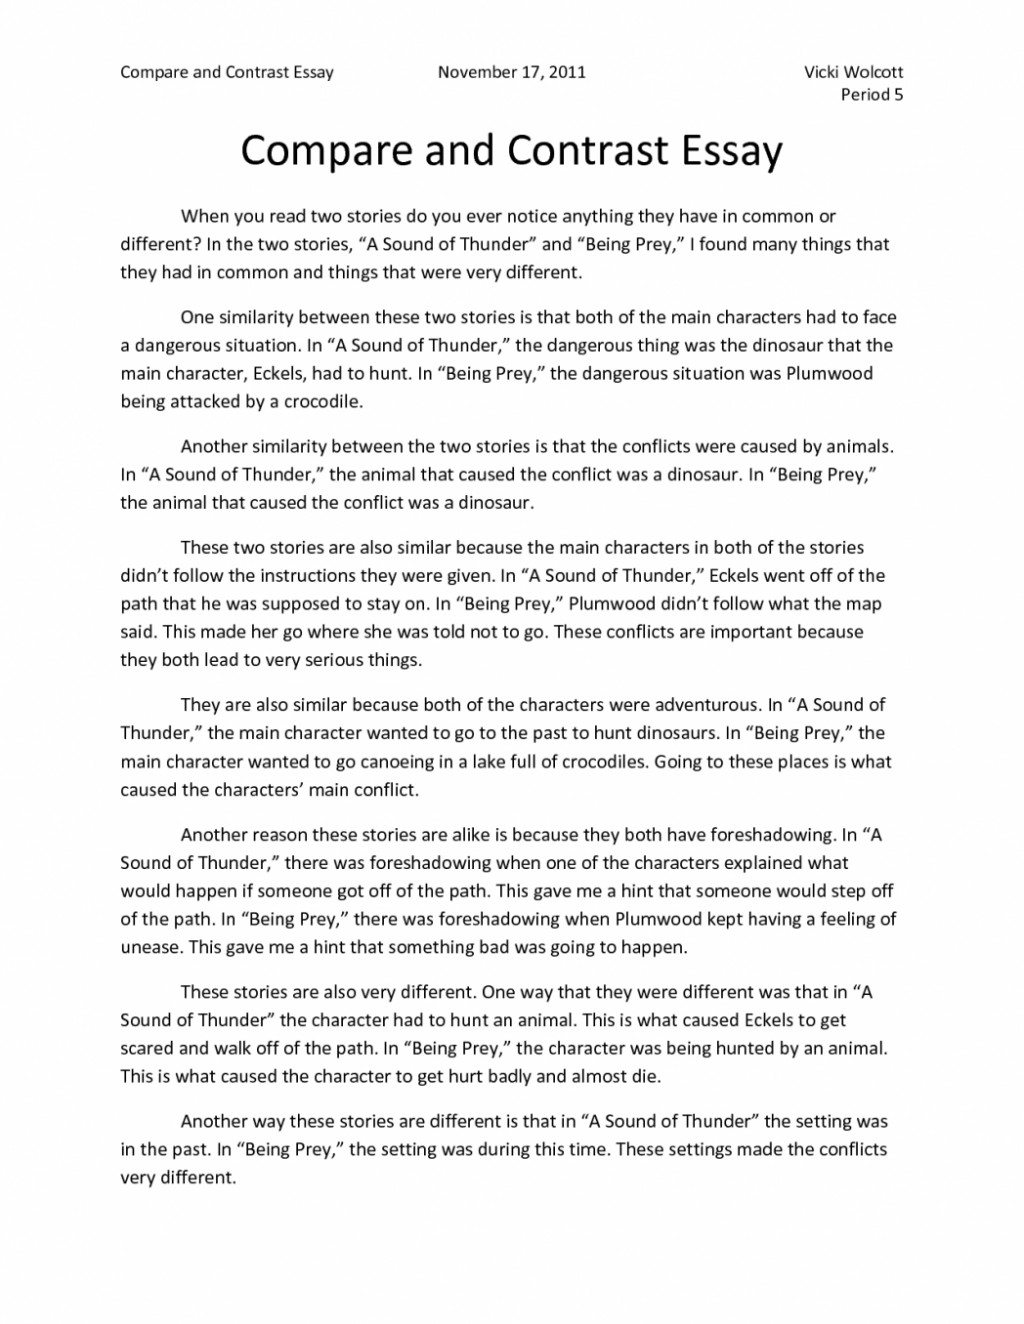 003 Conclusion For Compare And Contrastsay Writing Comparison Argumentative Research Paper Example Contrast Science Pdf Examples Outline Mla Apa History Scientific 1048x1356 Striking How To Write Essay Block Method Large